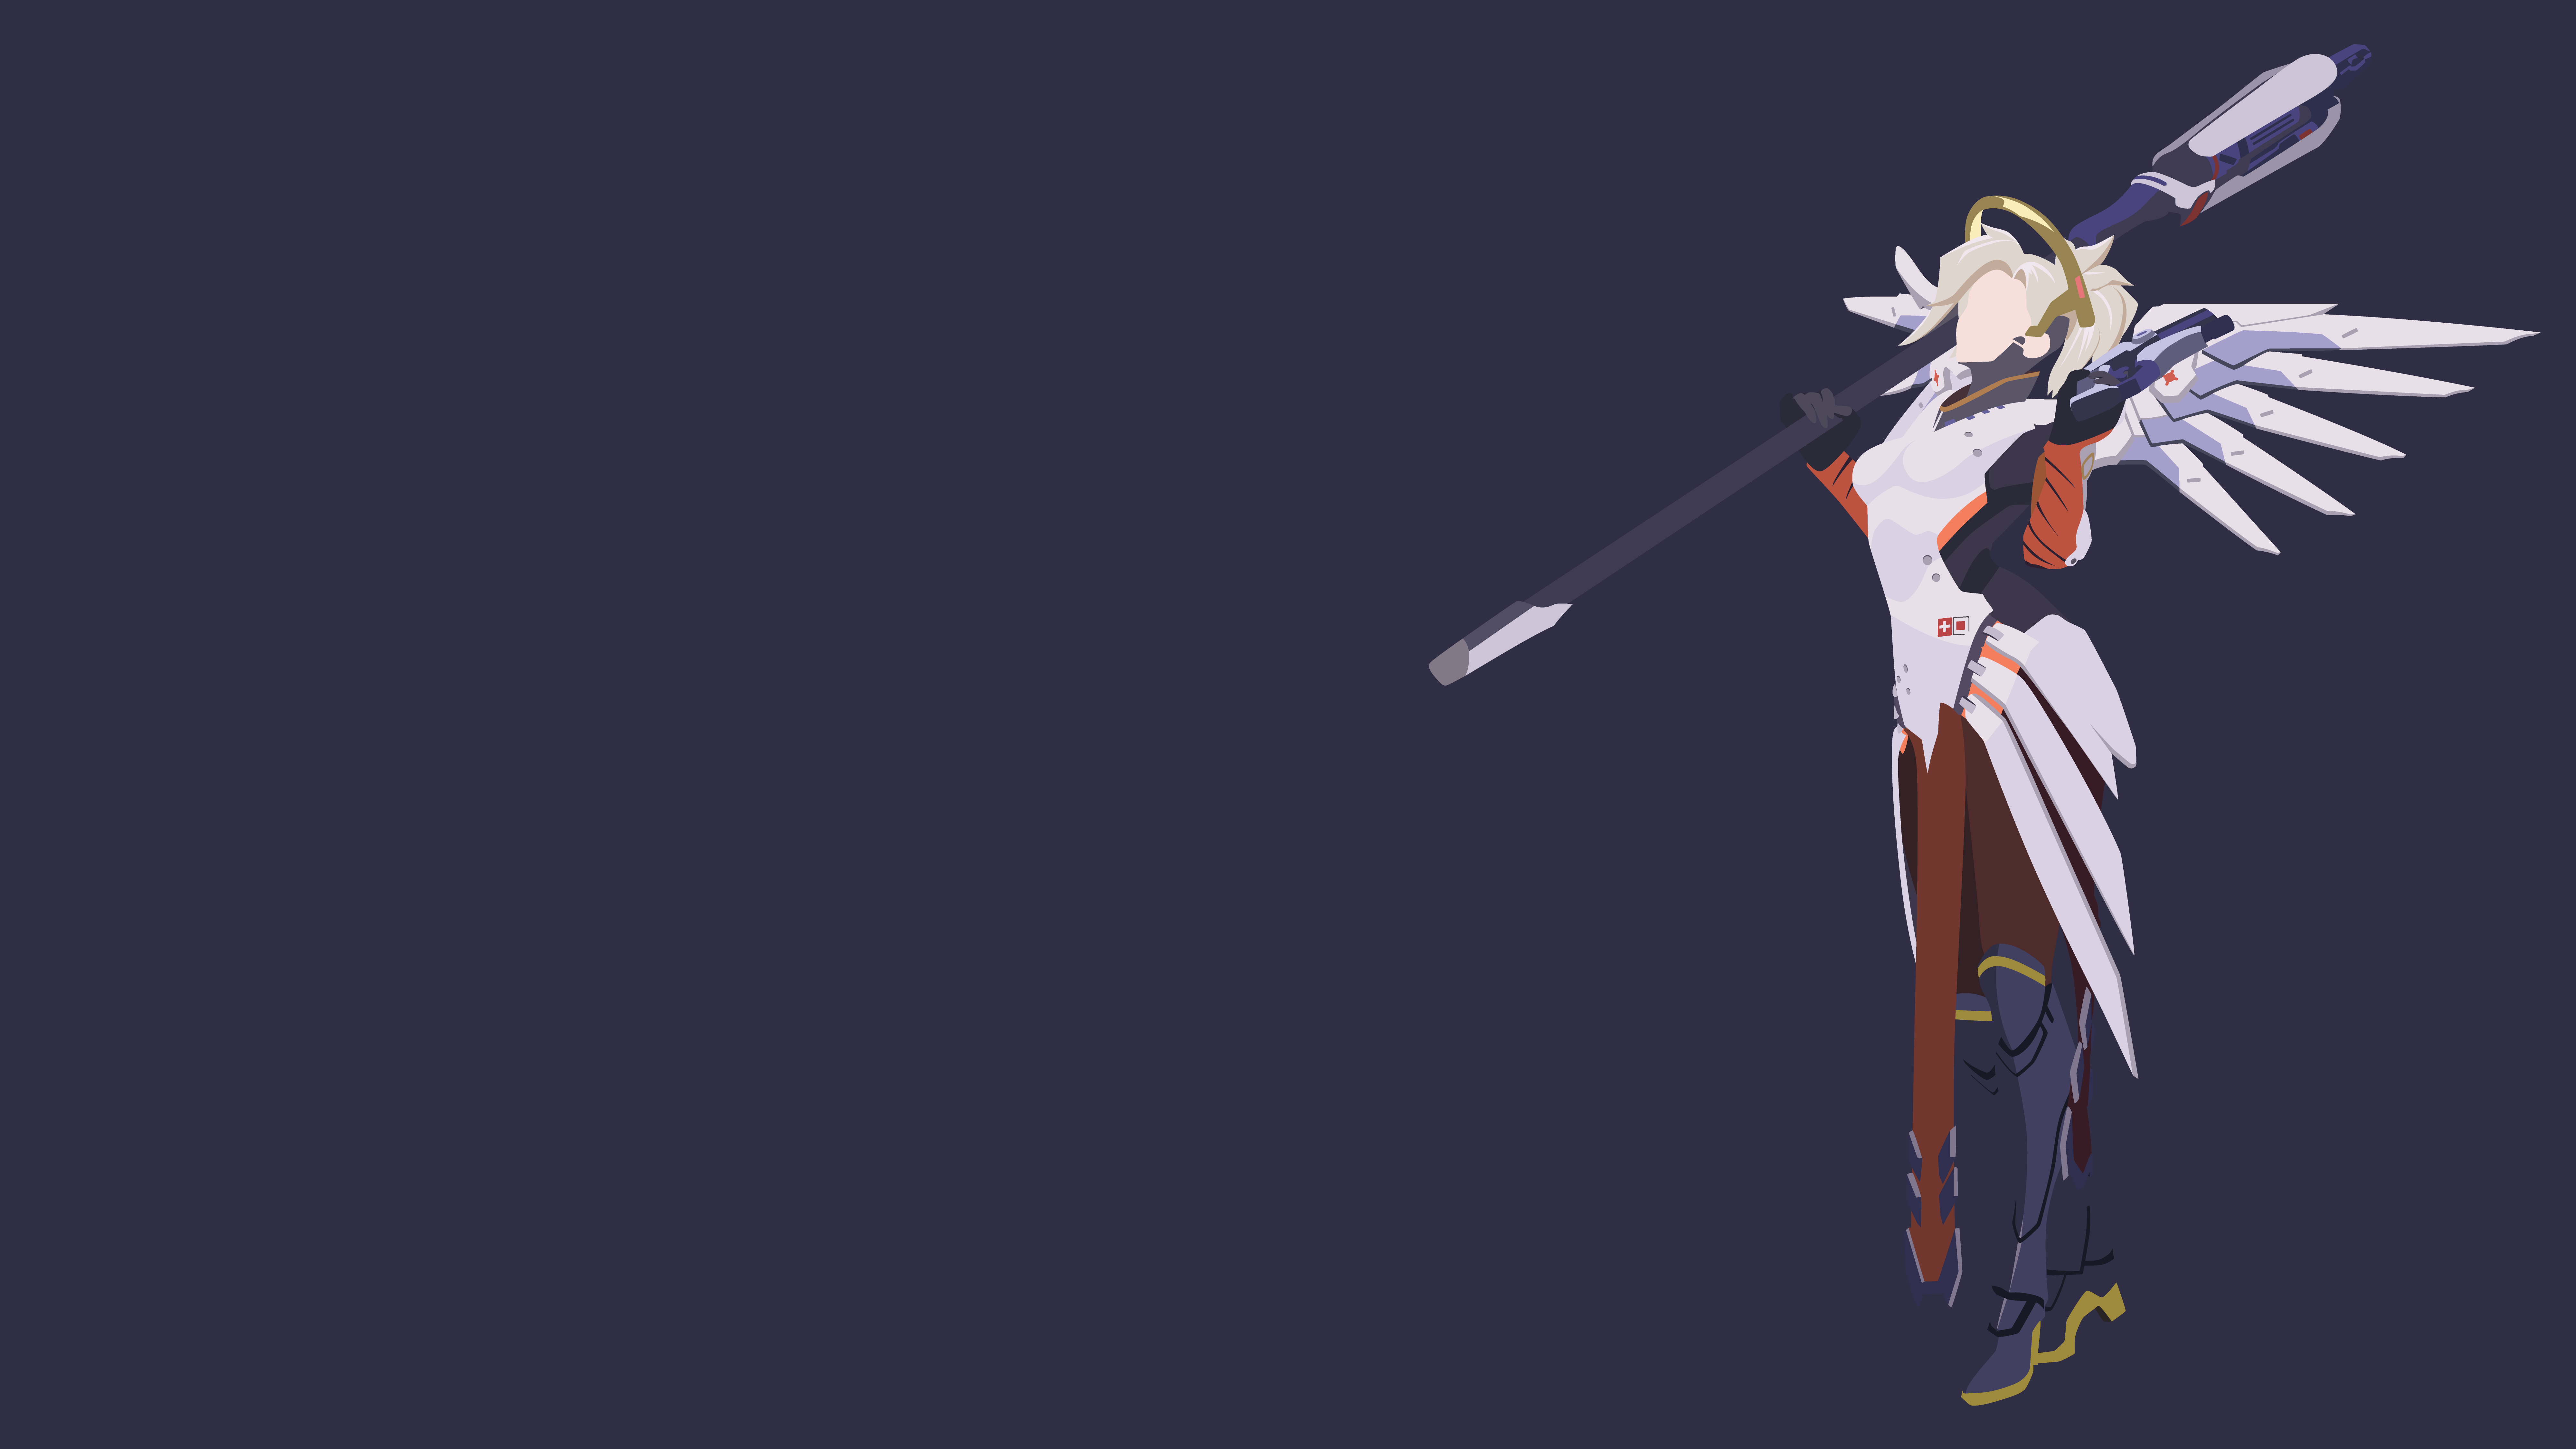 Mercy Minimalistic Wallpaper (1920x1080) By Sohka217 On